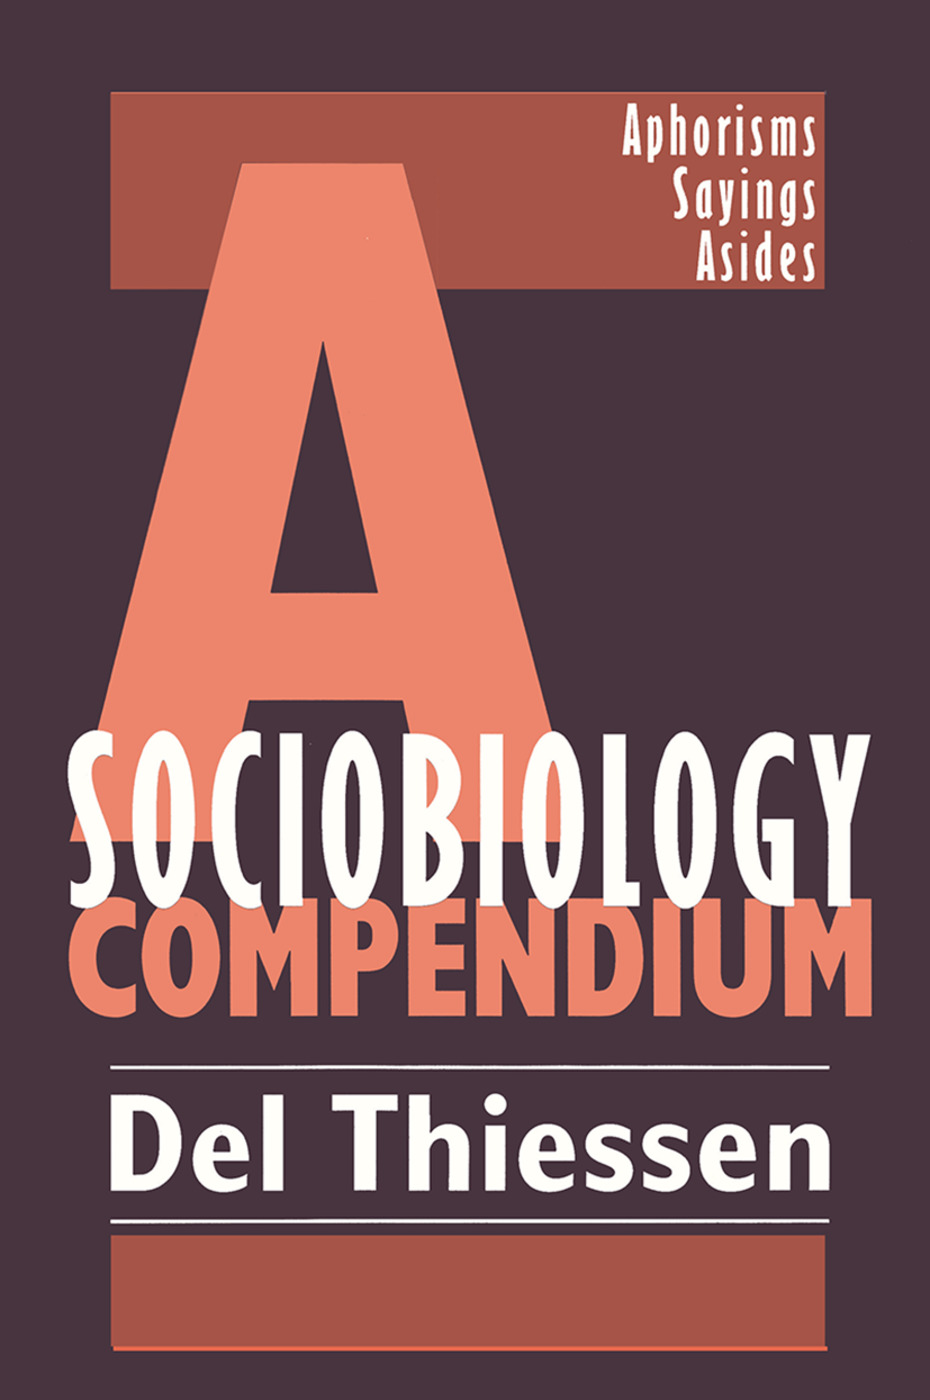 A Sociobiology Compendium: Aphorisms, Sayings, Asides, 1st Edition (Paperback) book cover